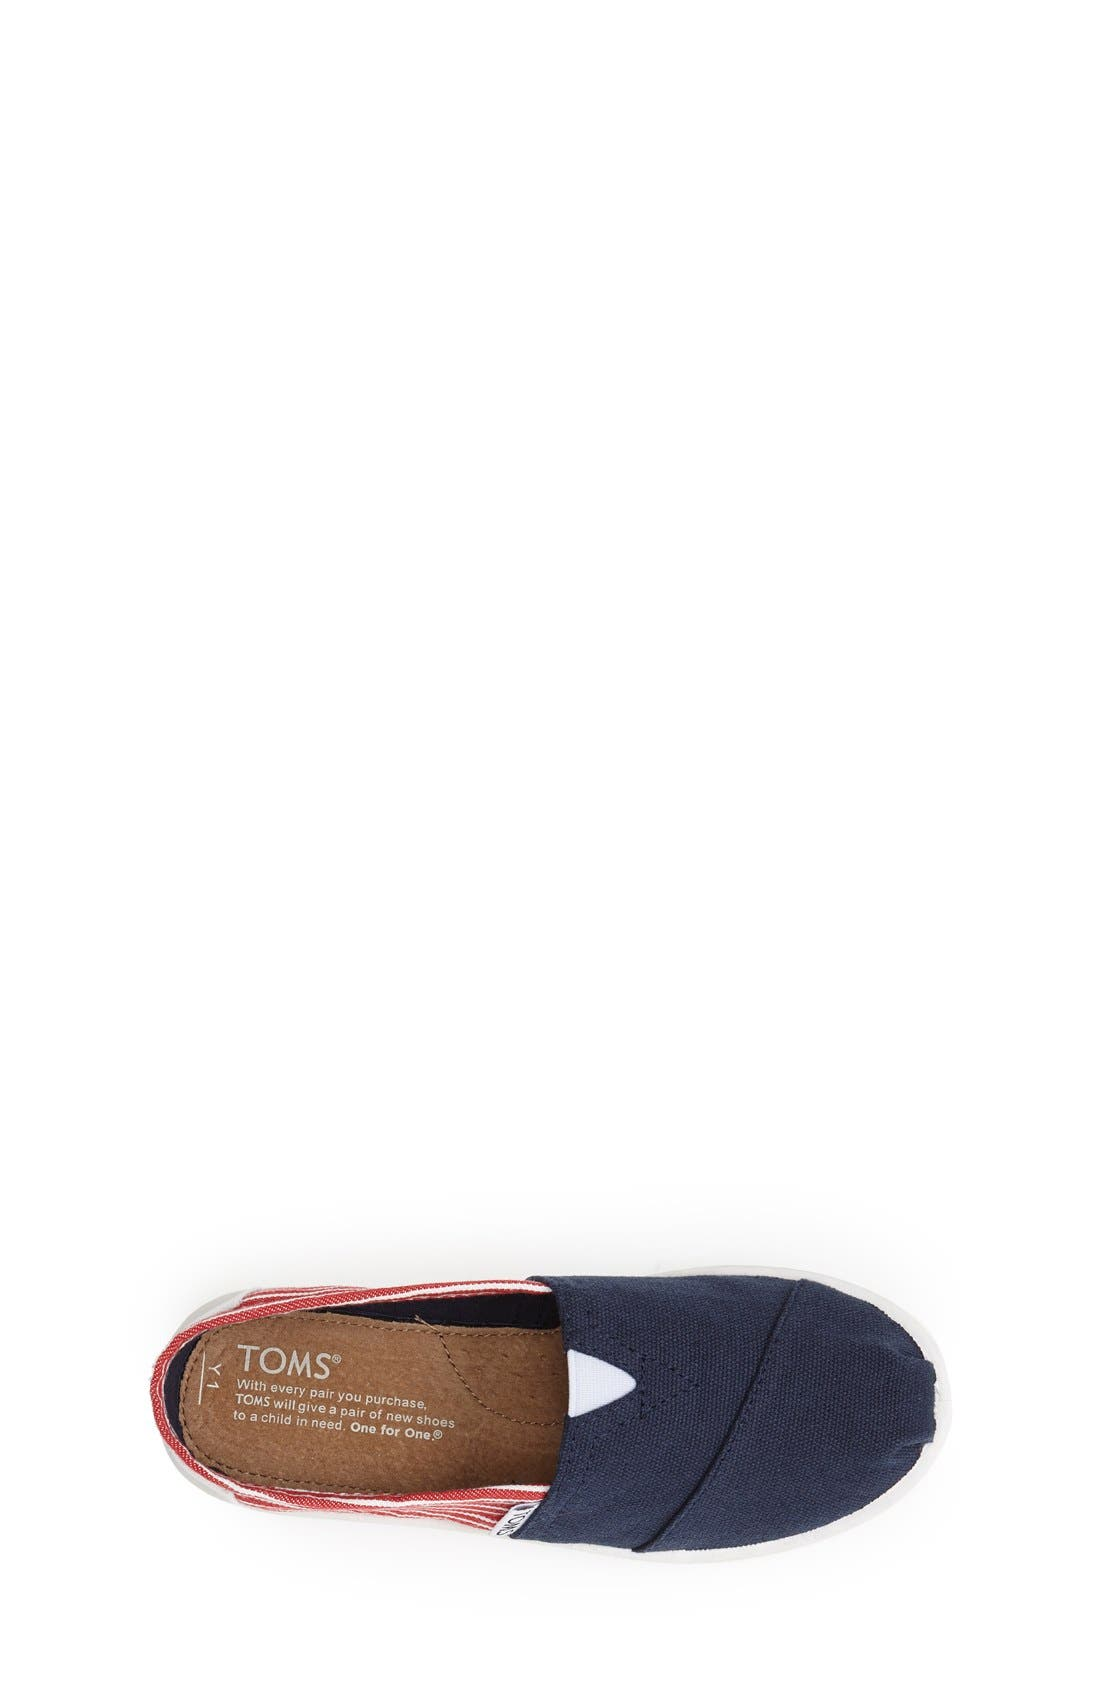 Alternate Image 3  - TOMS 'Youth Classic - Freedom' Slip-On (Toddler, Little Kid & Big Kid)